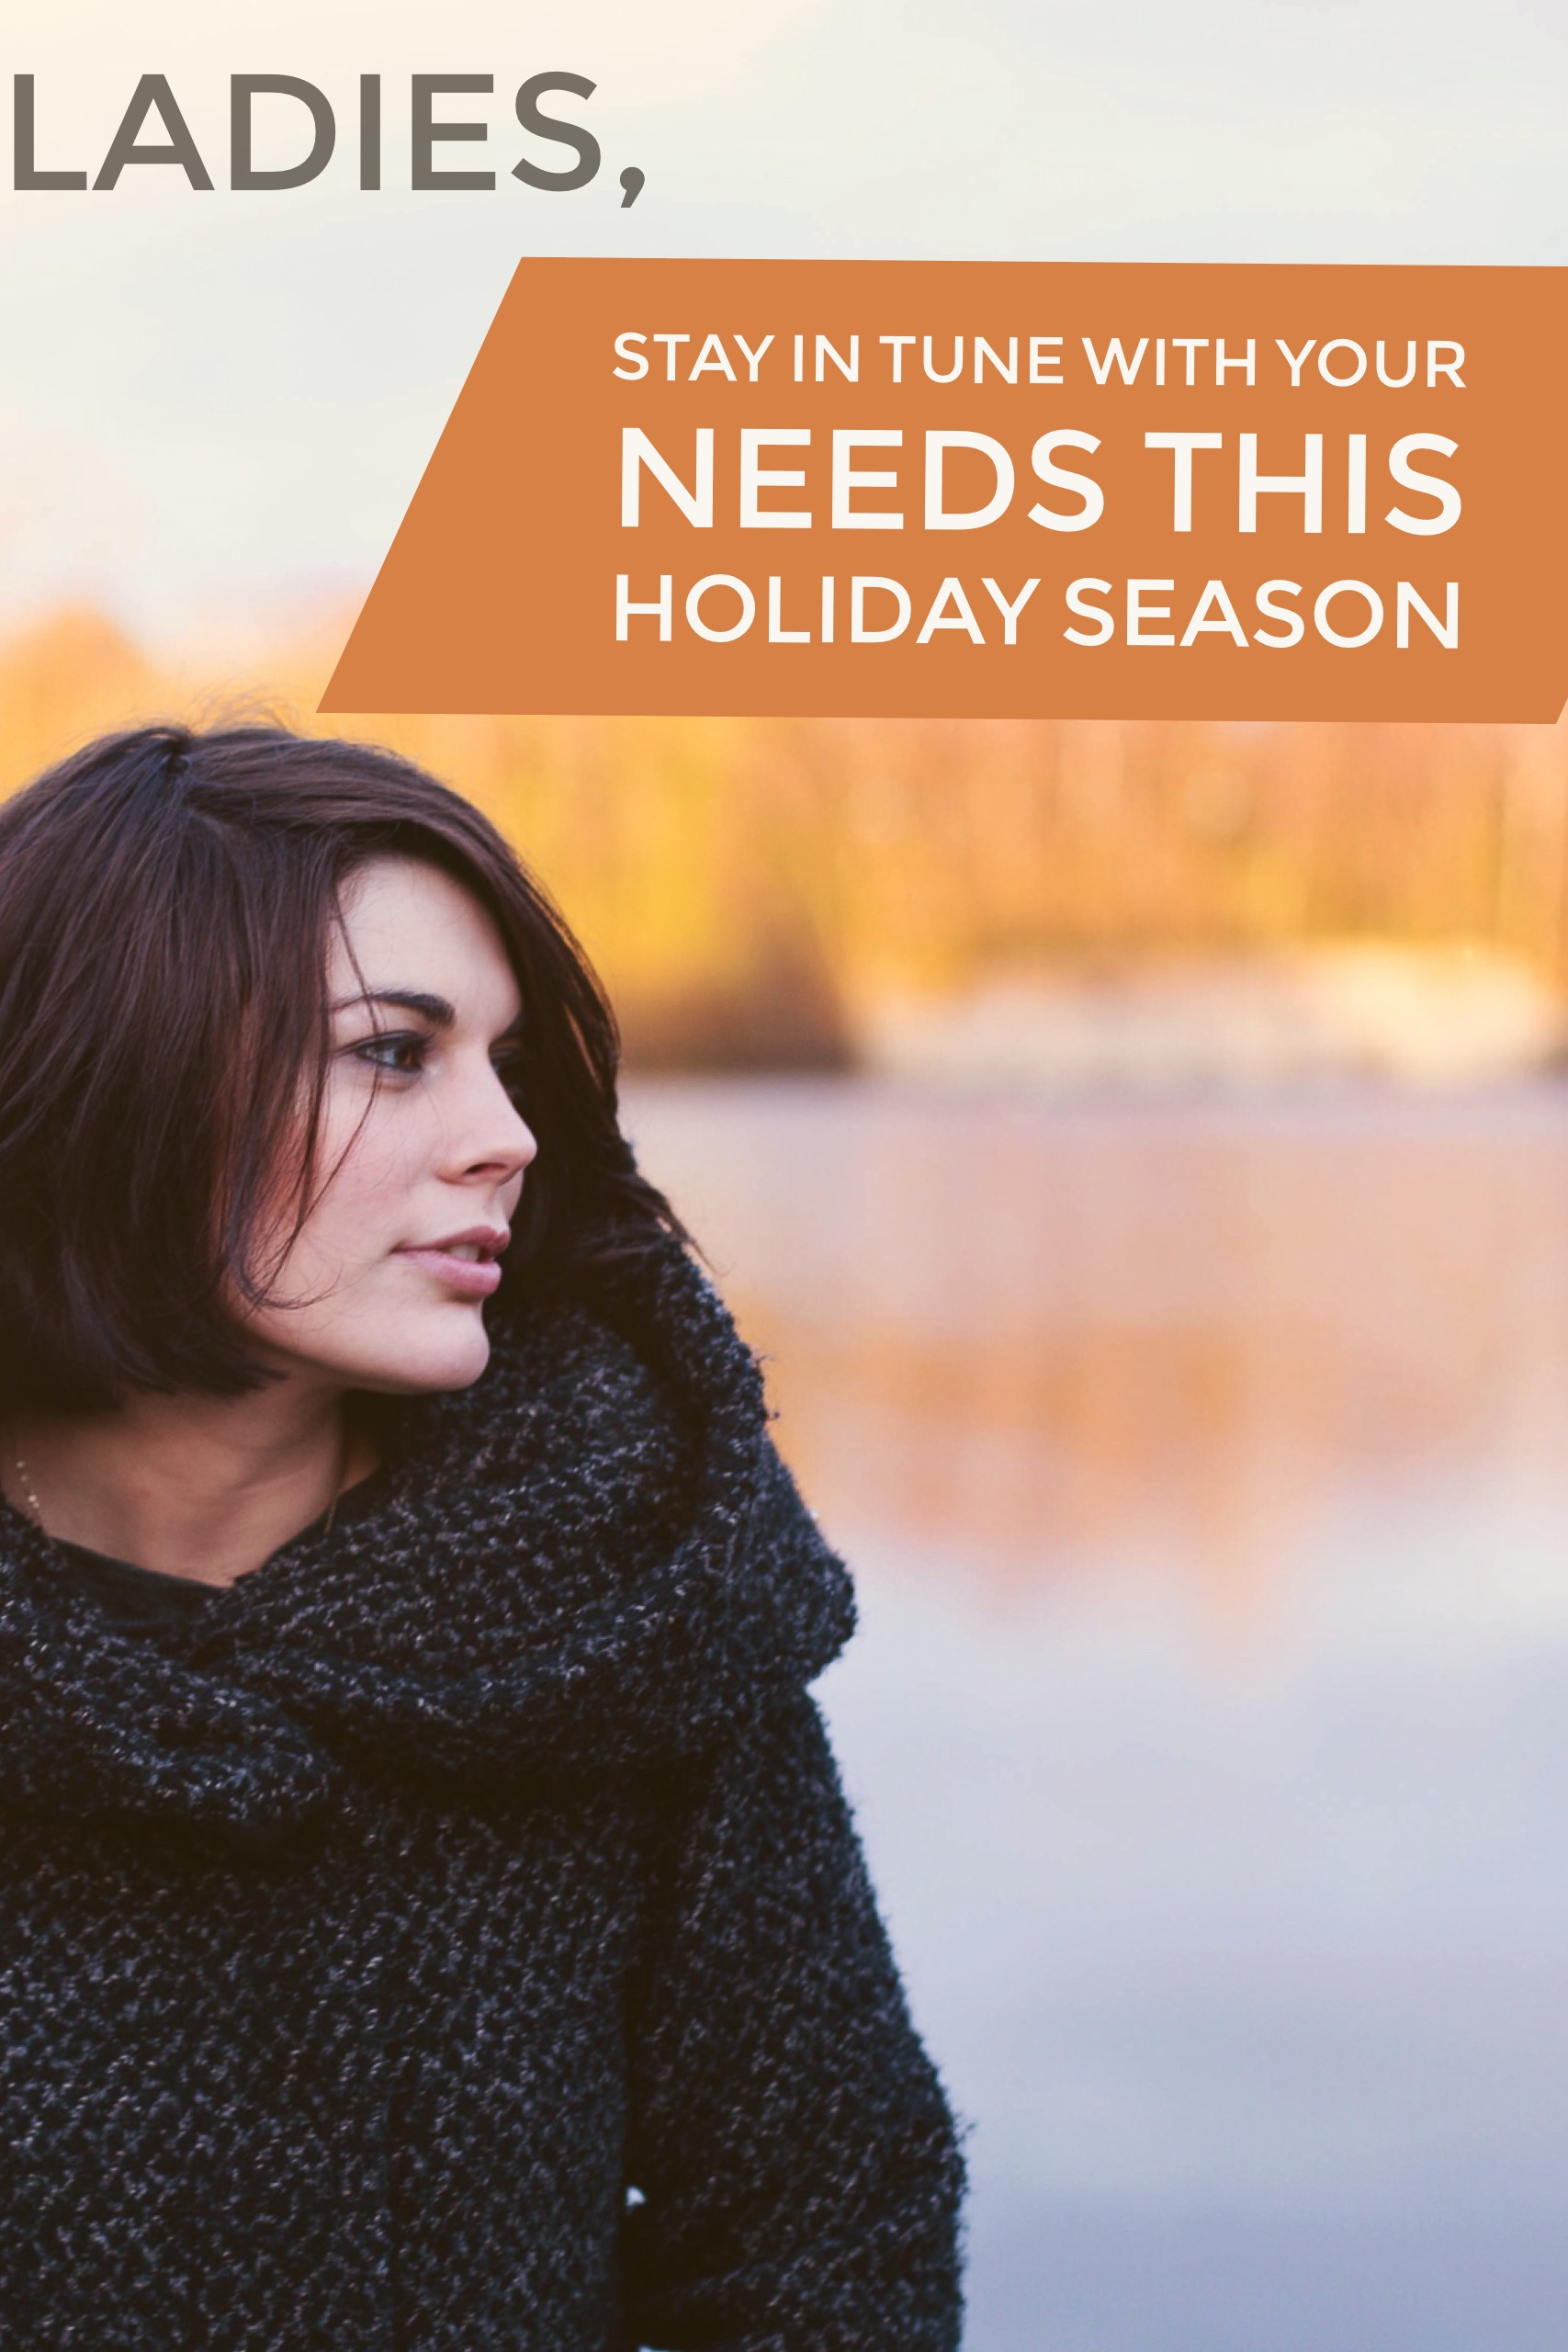 Ladies, Stay in Tune With Your Needs this Holiday Season + $25 Visa Gift Card GIveaway